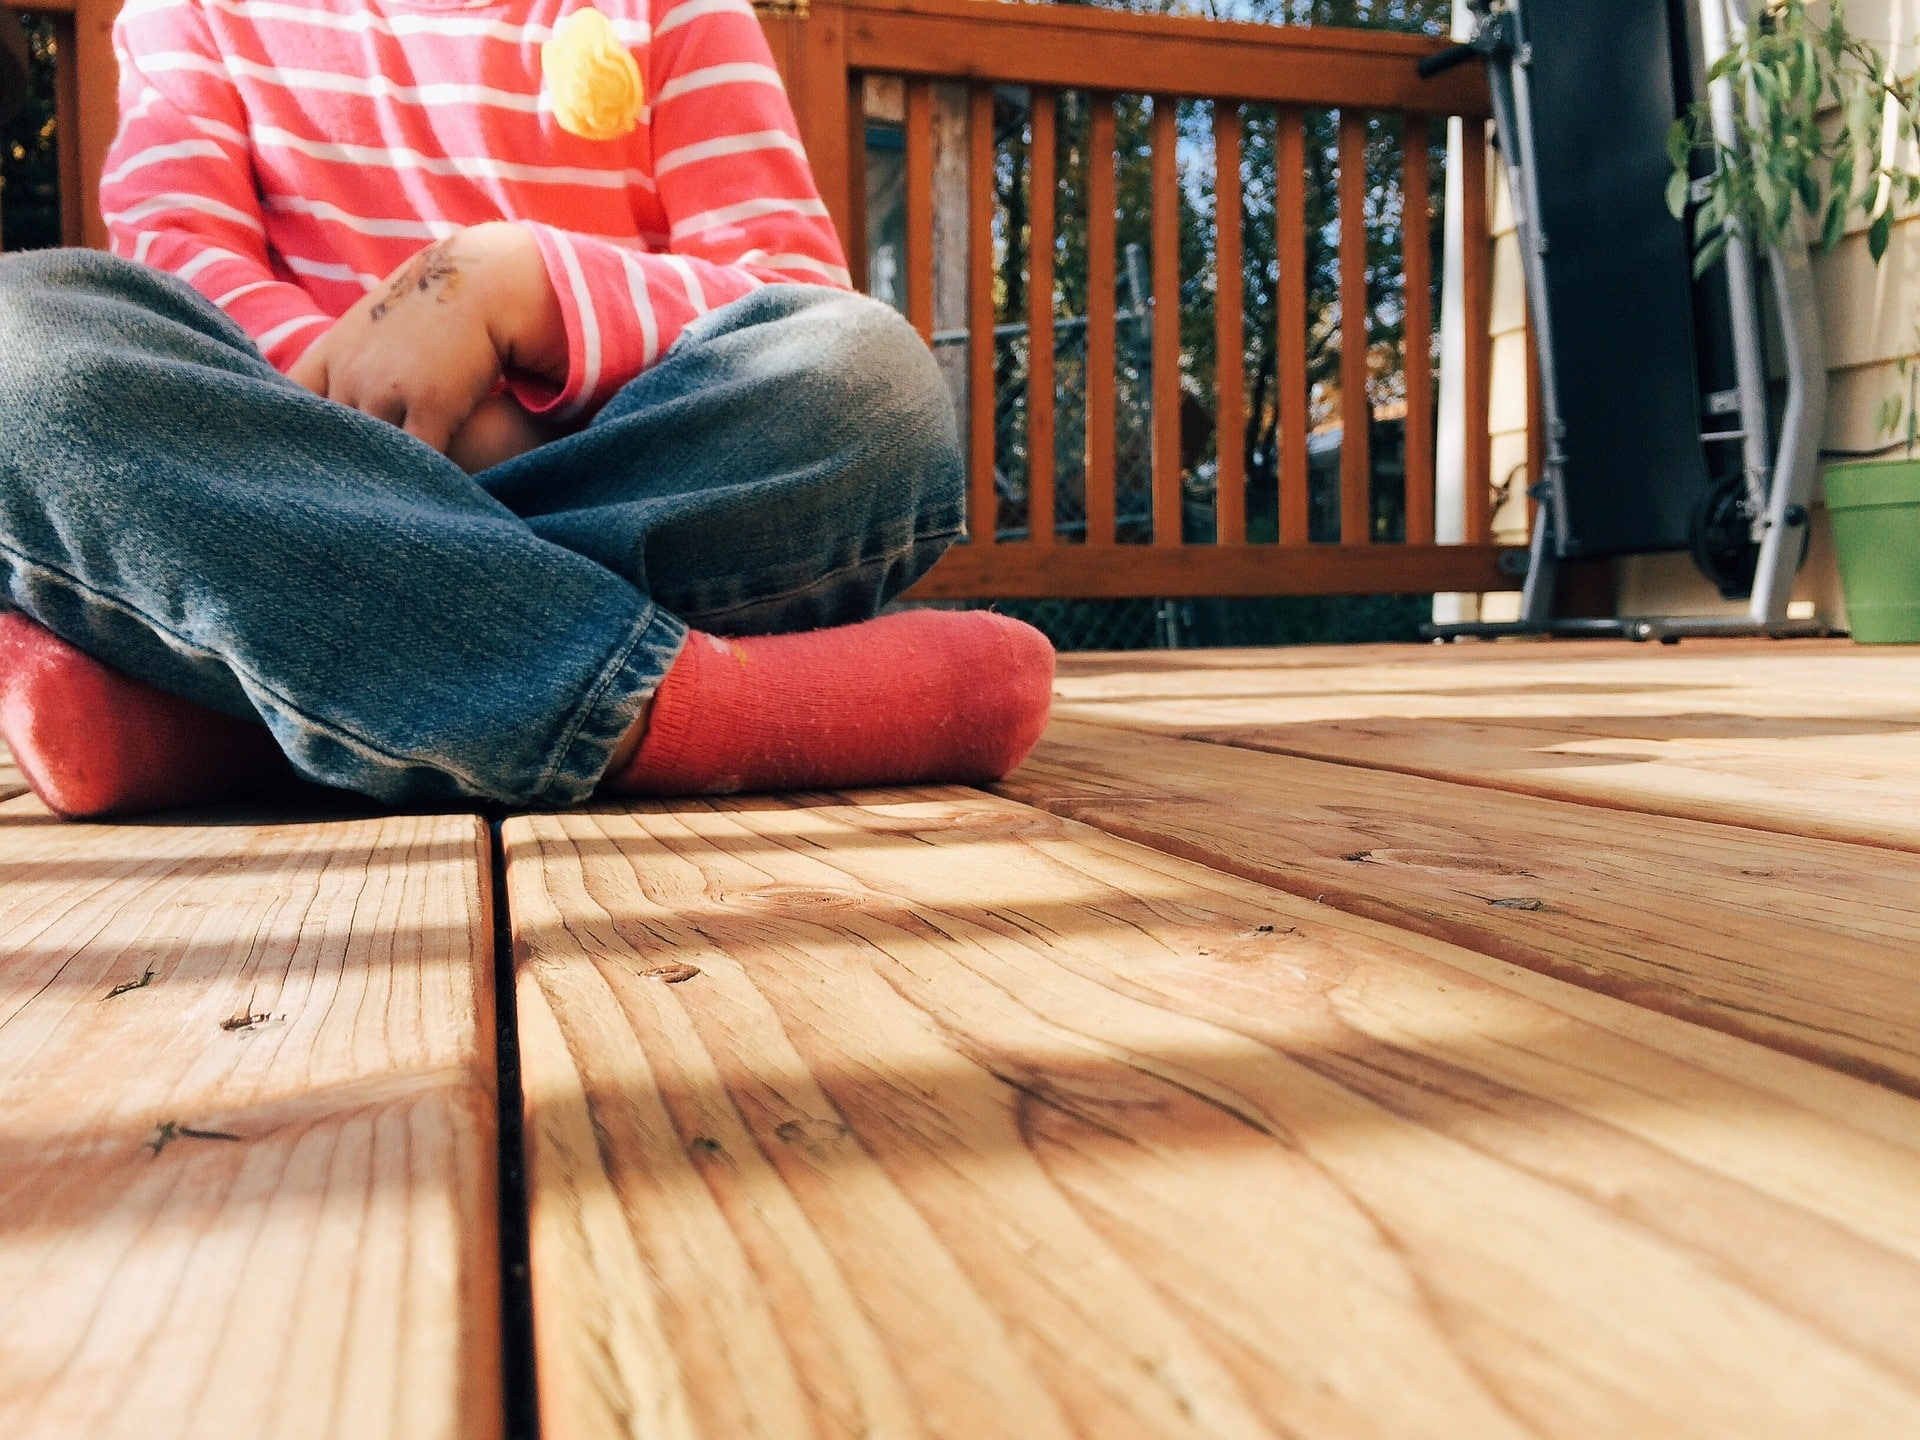 child sitting on outdoor deck